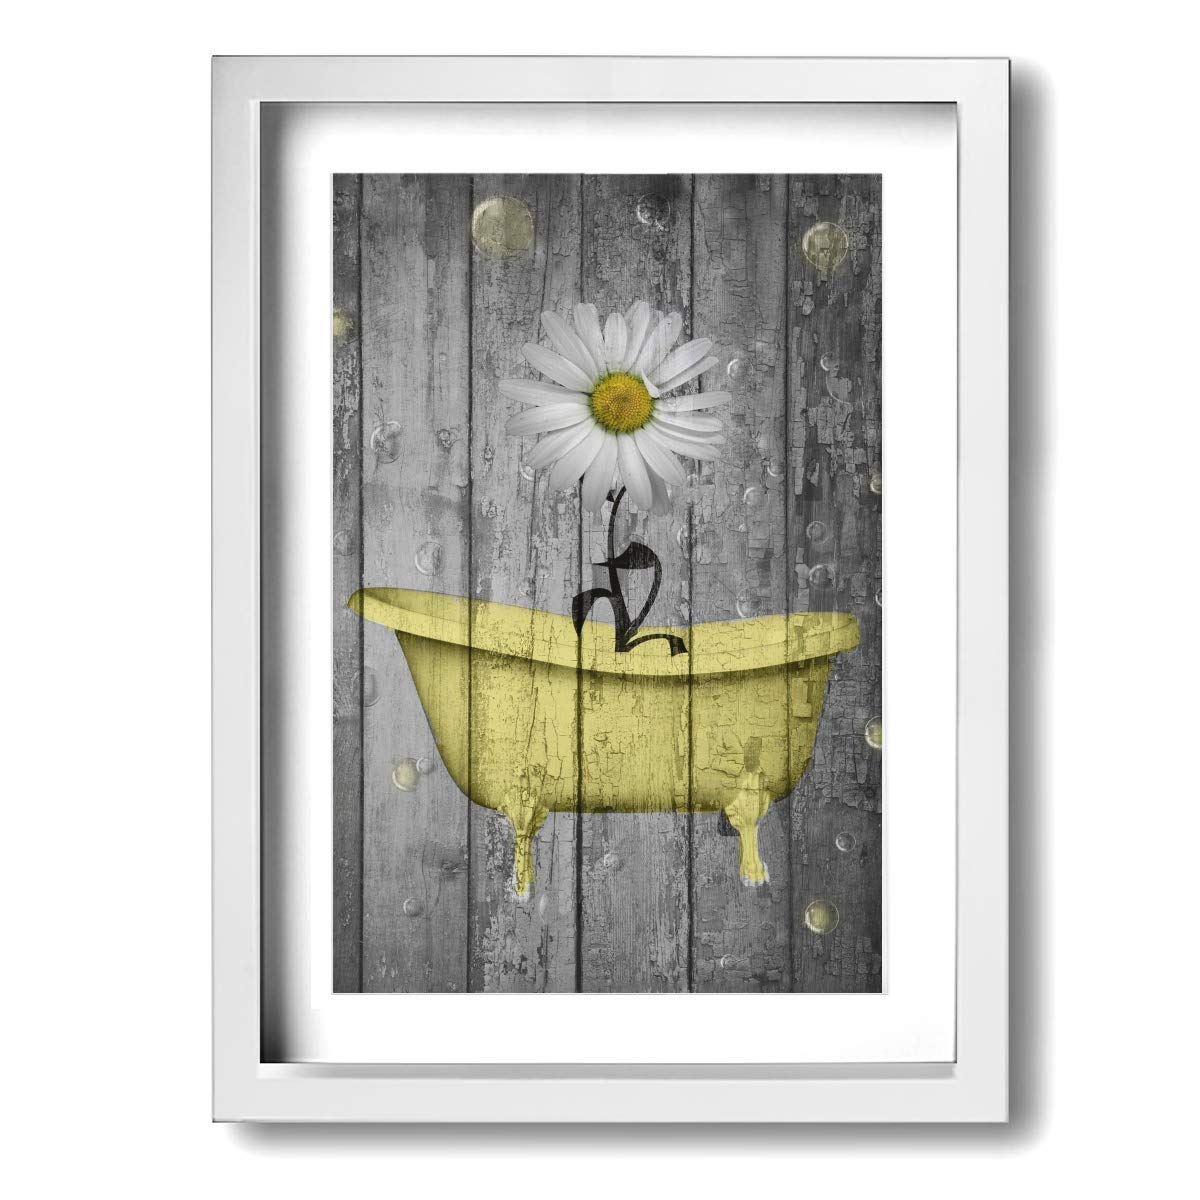 Groovy Ale Art Rustic Picture Frame Bathroom Wall Art Daisy Flower Bubbles Yellow Gray Vintage Rustic Bath Wall Art Ready To Hang For Wall Decor Home Interior And Landscaping Ponolsignezvosmurscom